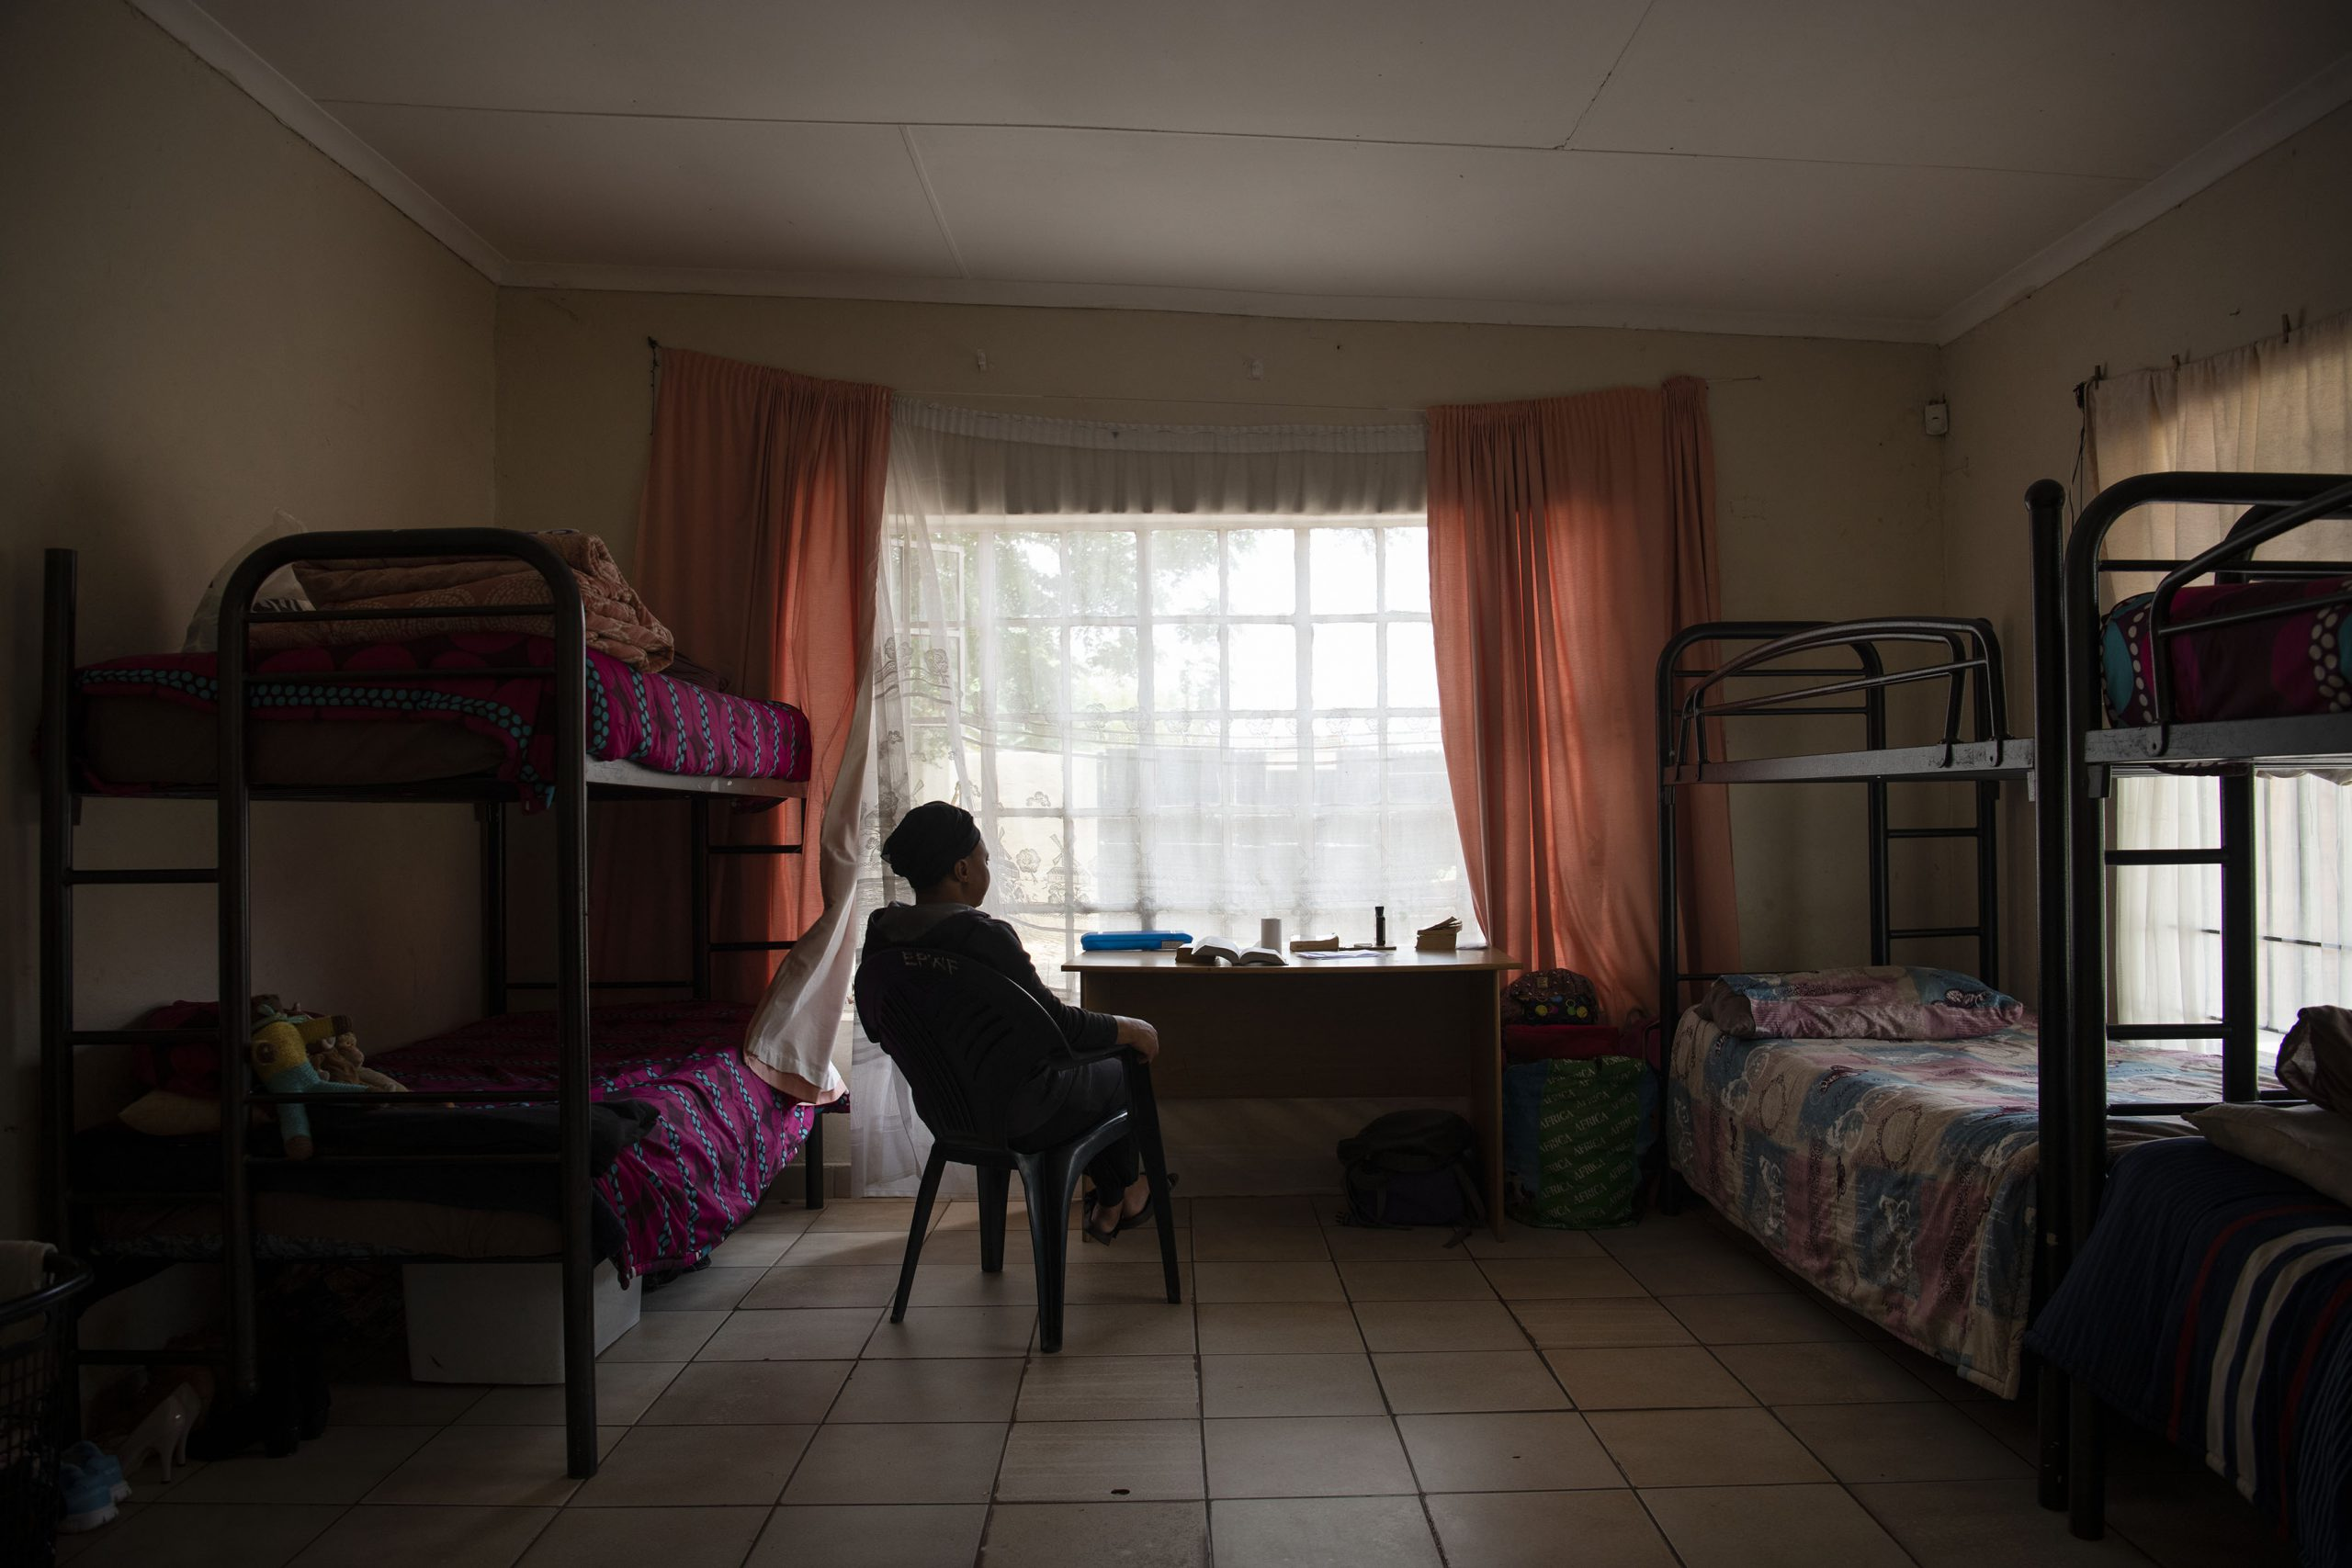 13 December 2019: A resident in her room at the women's shelter.